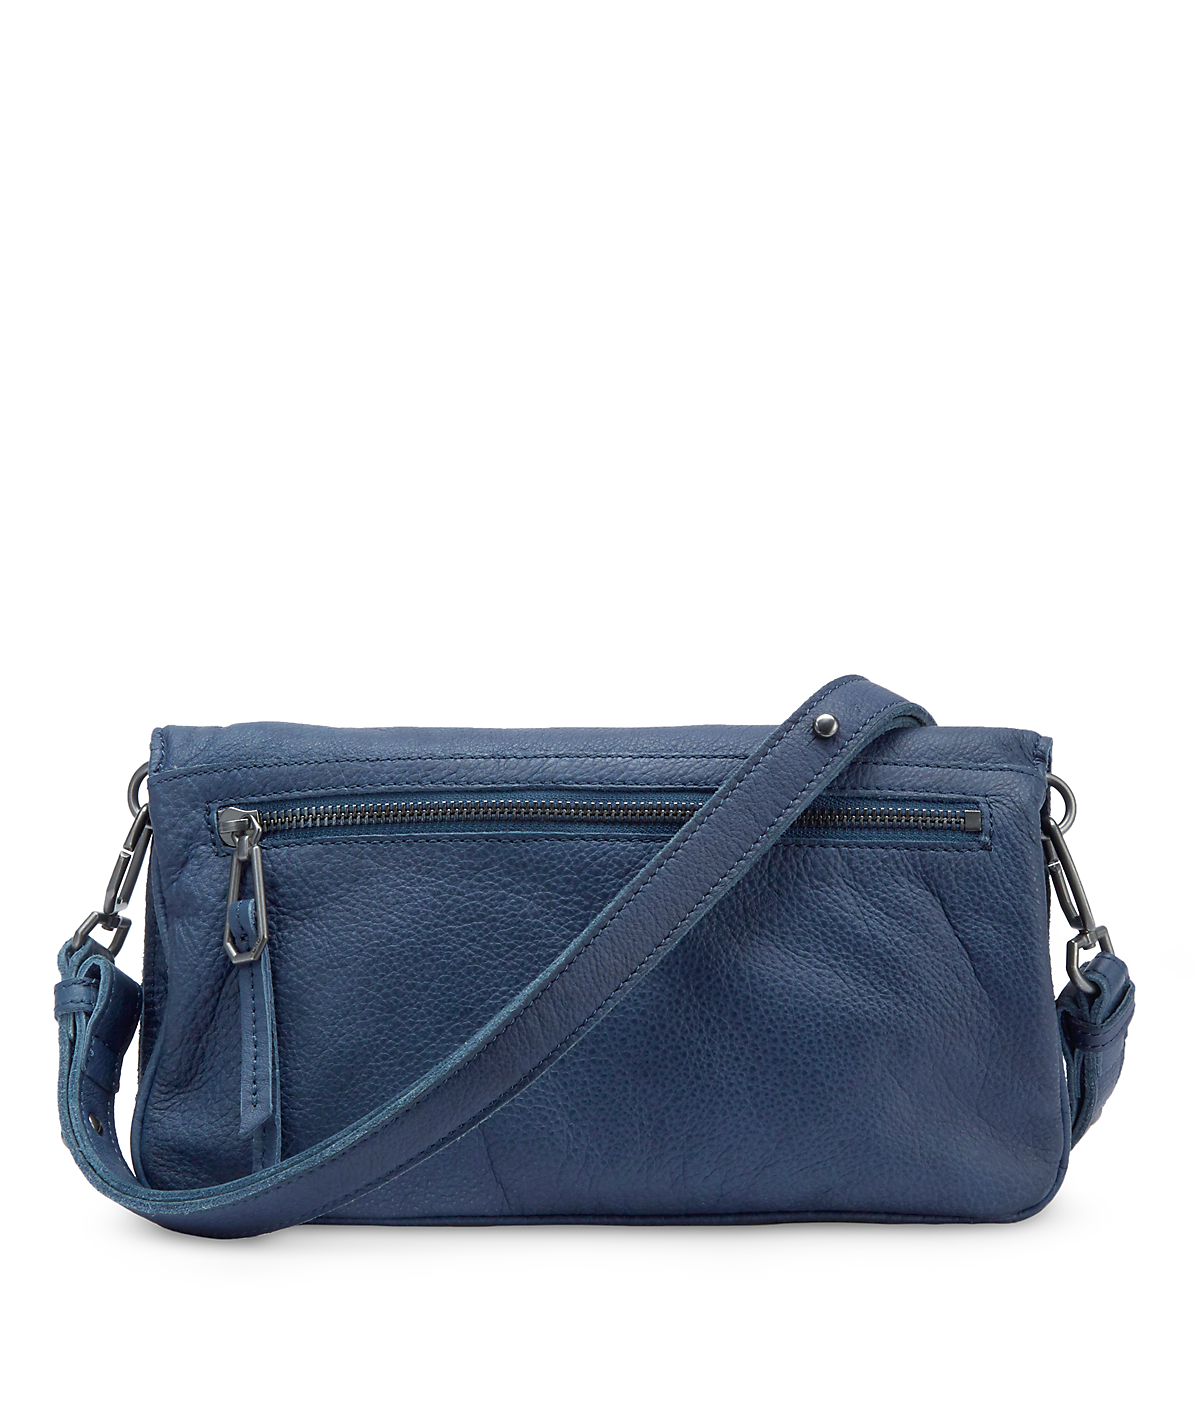 Aloe E shoulder bag from liebeskind